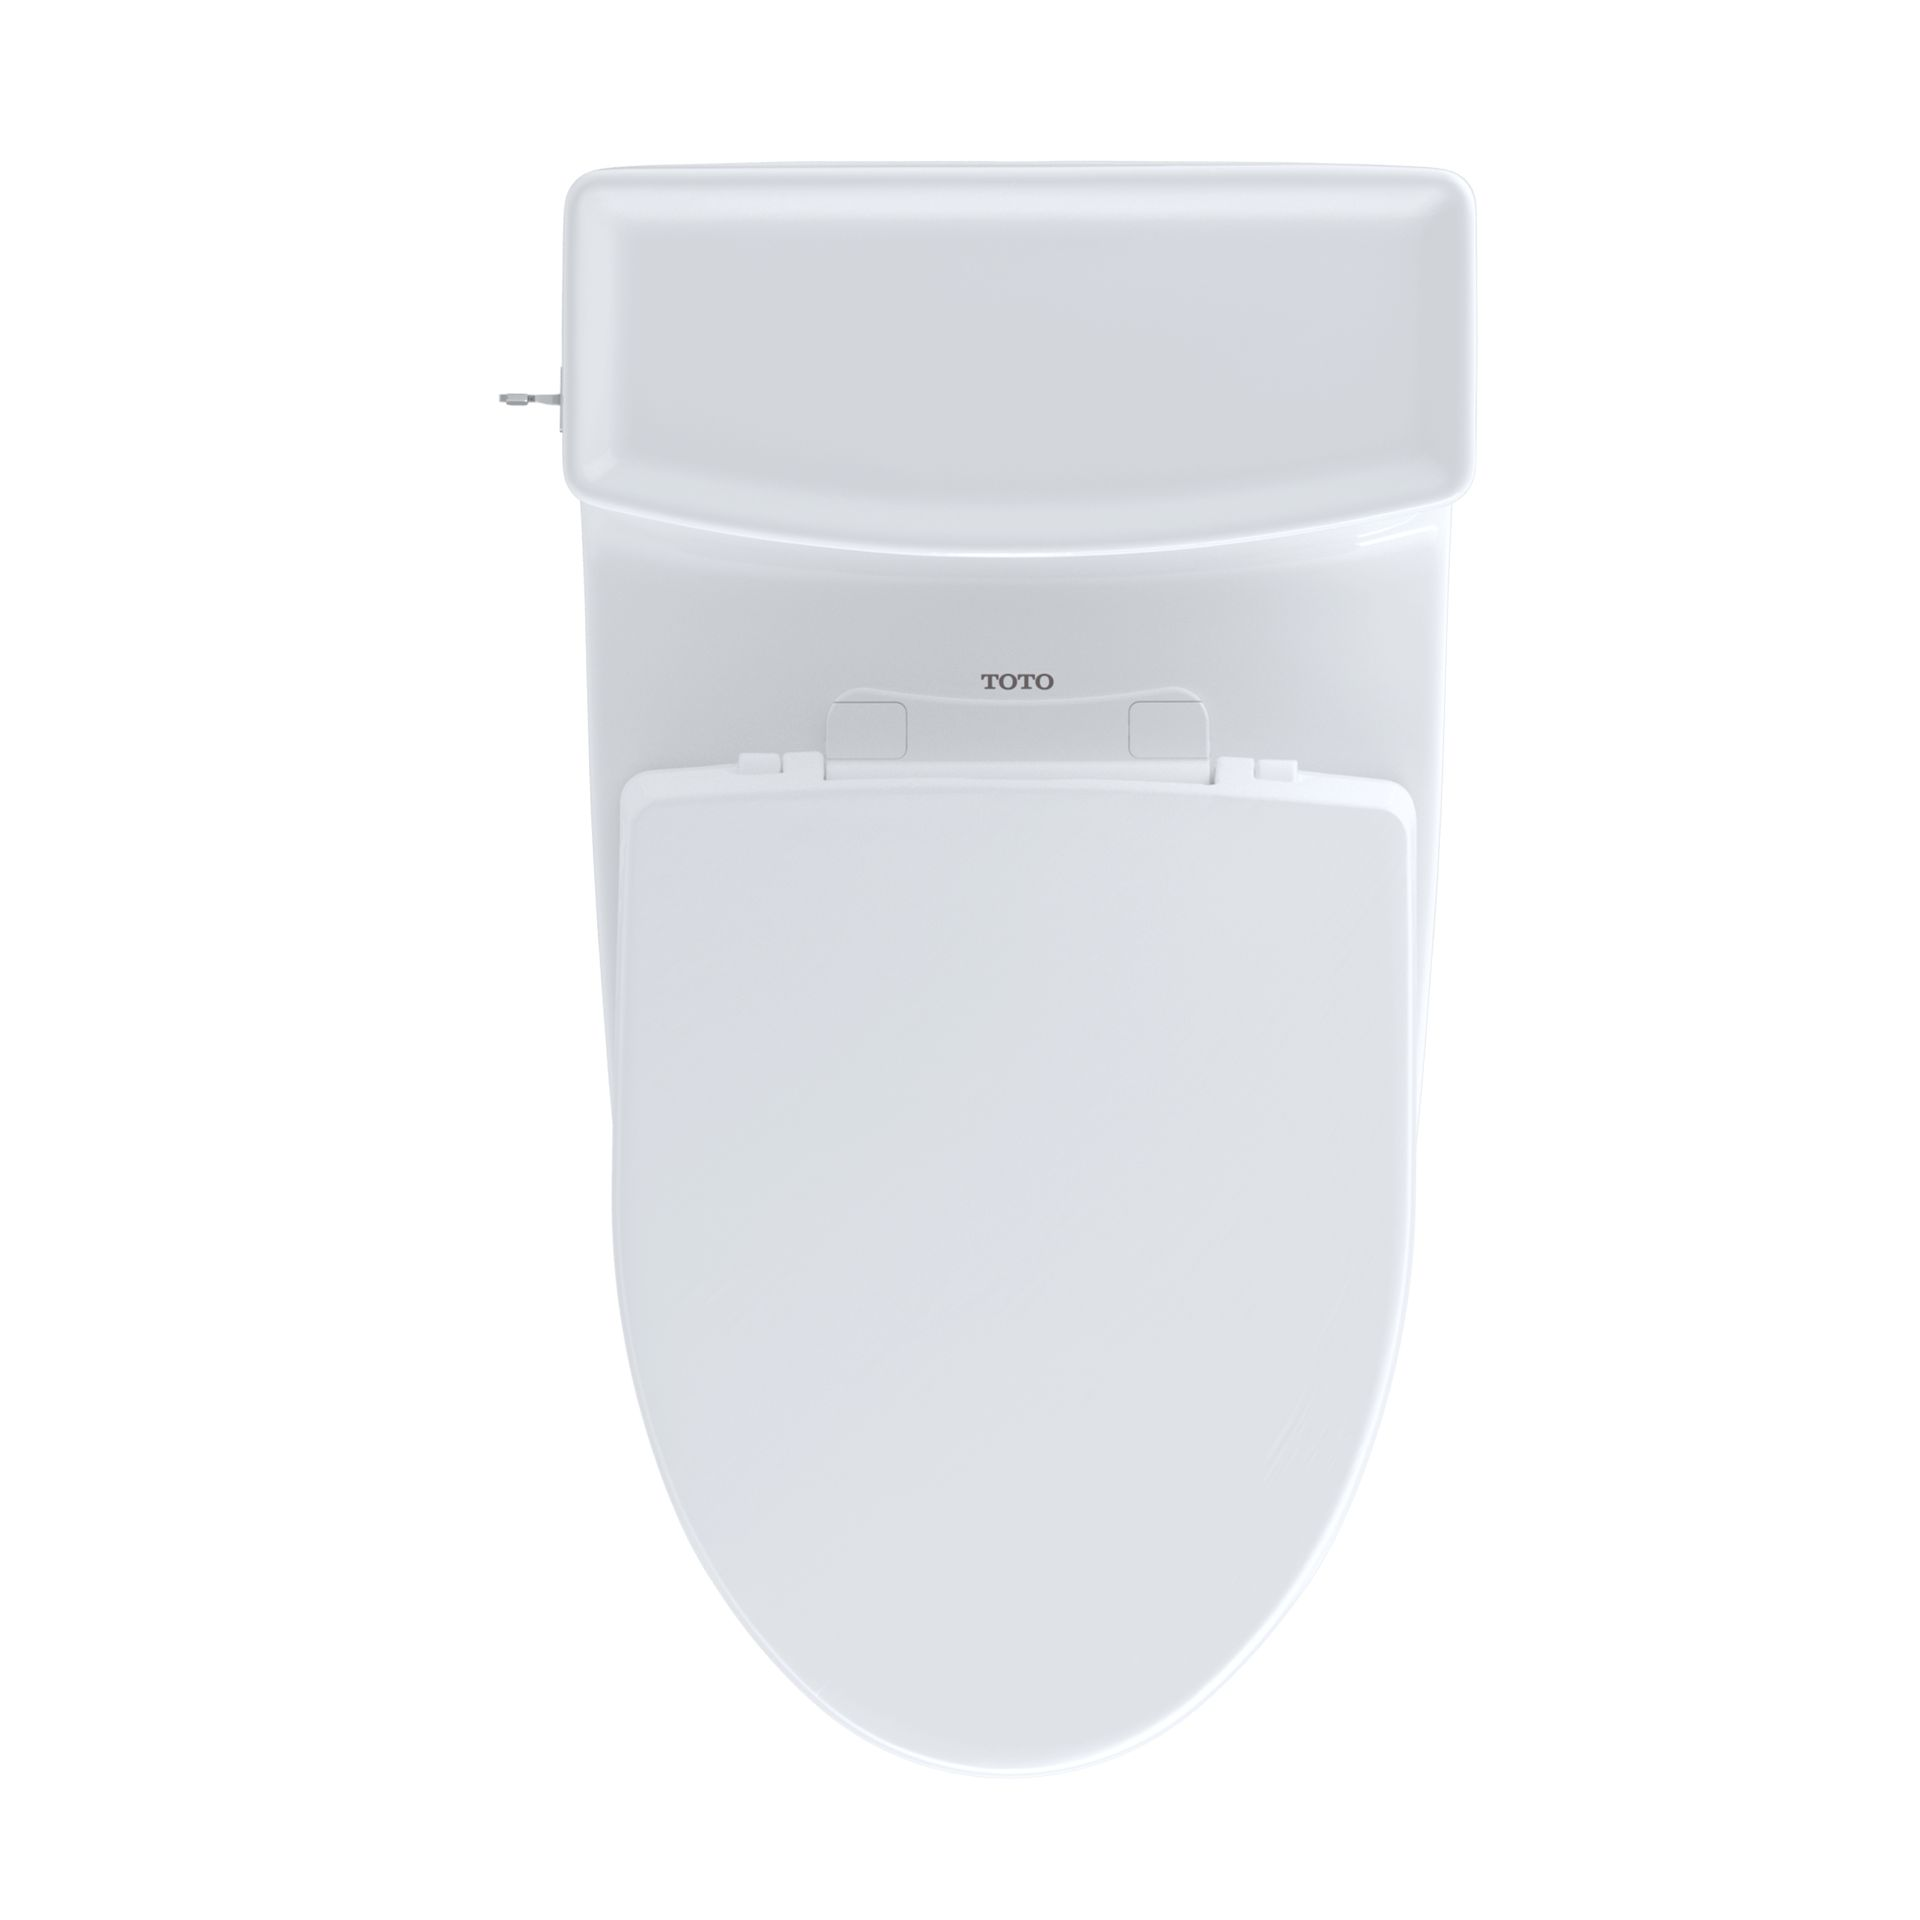 Aimes® One-Piece Toilet, 1.28GPF, Elongated Bowl - TotoUSA.com